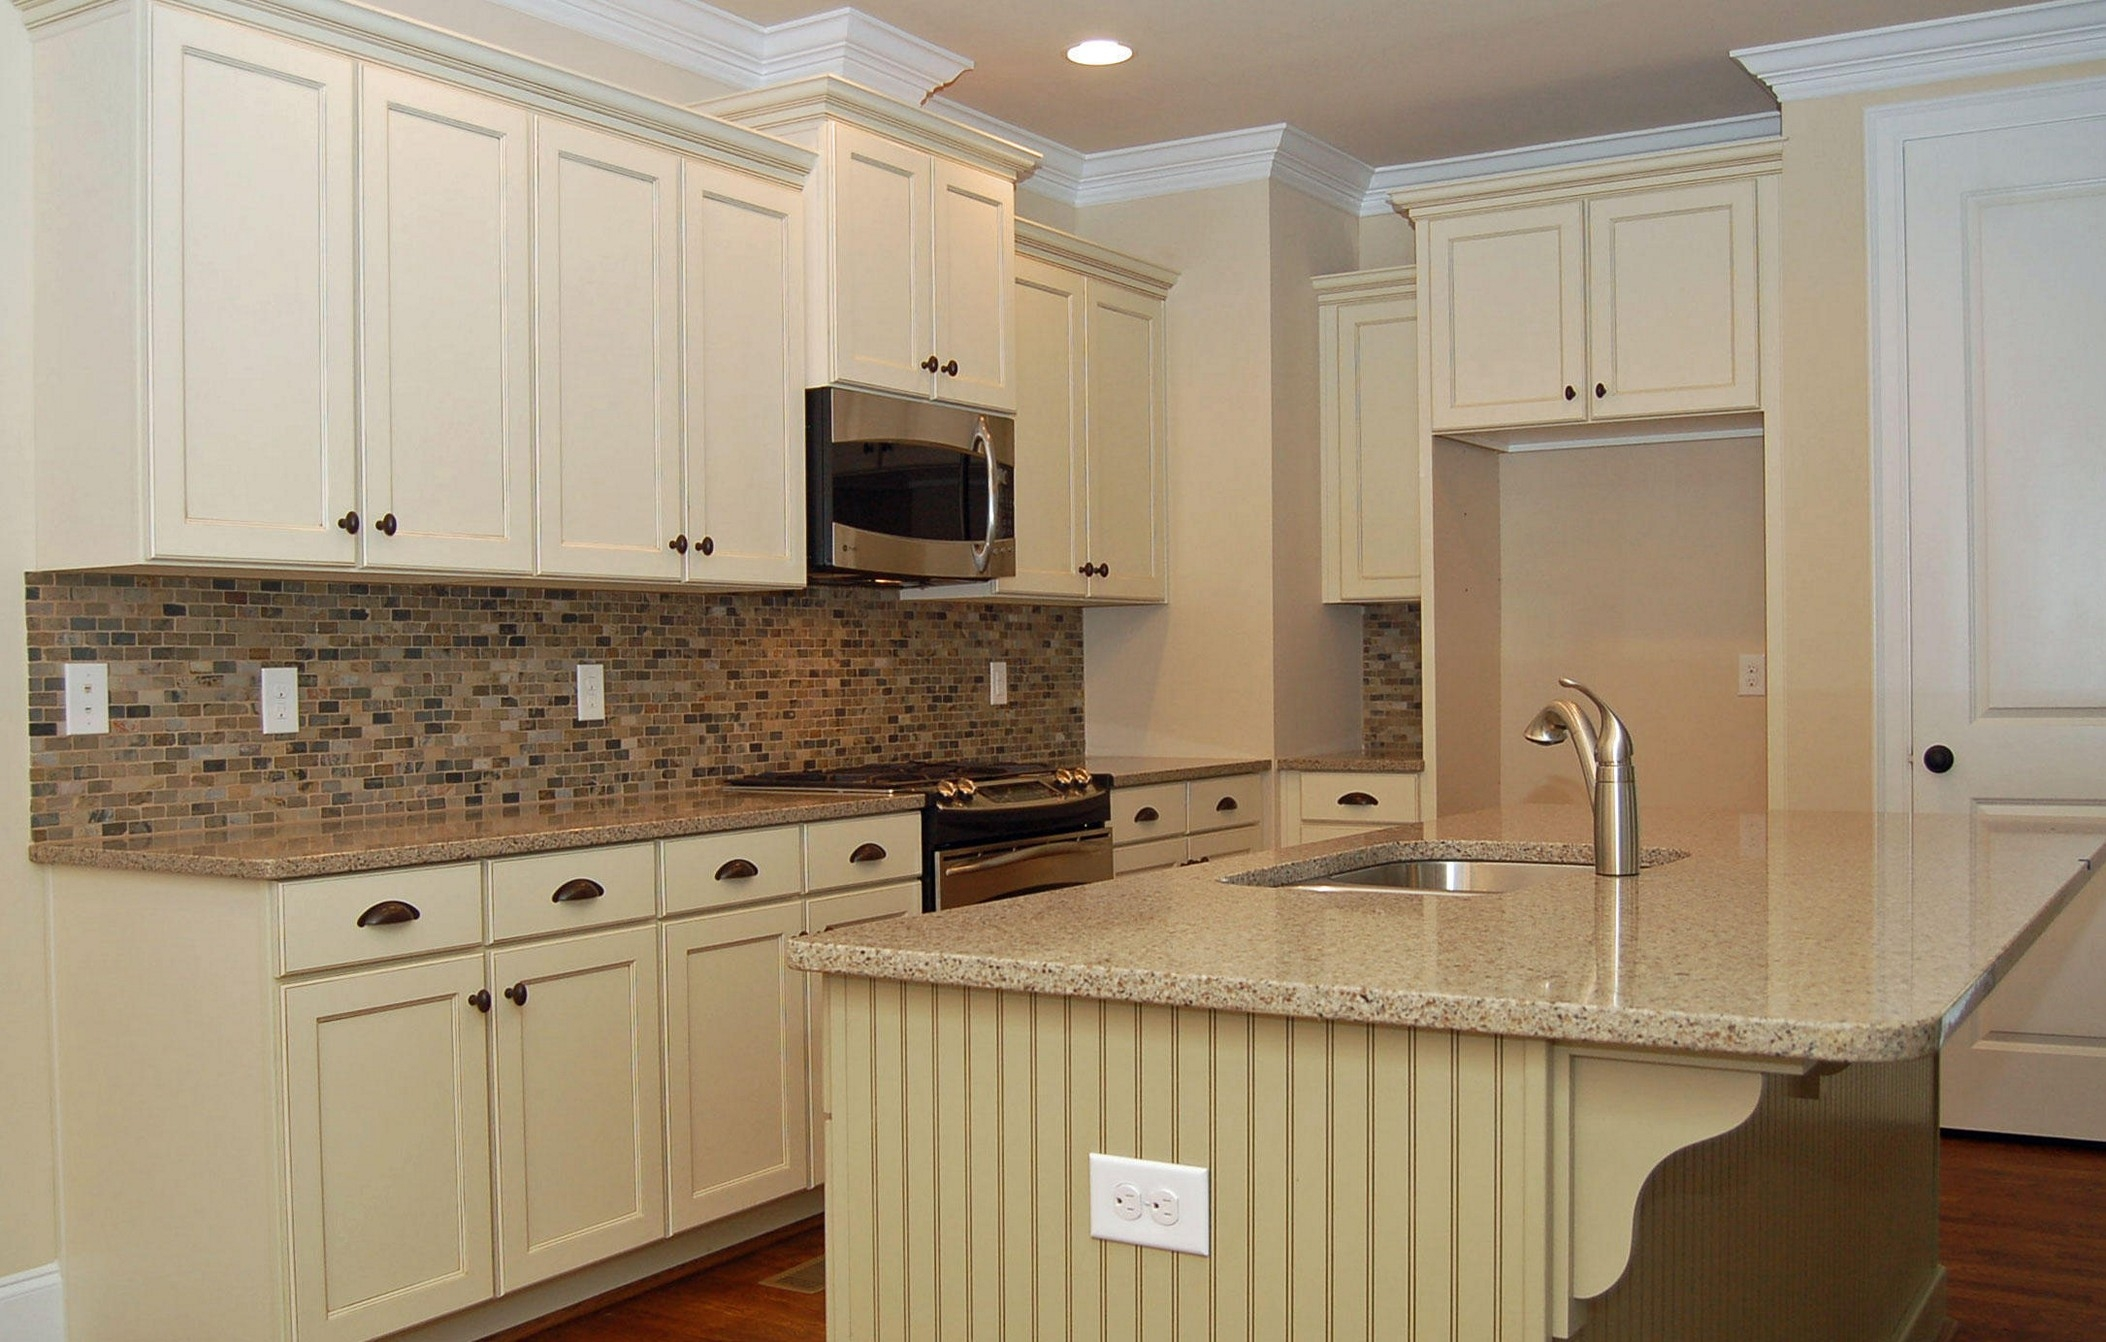 Antique White Kitchen Cabinets With Granite Countertops2106 X 1342